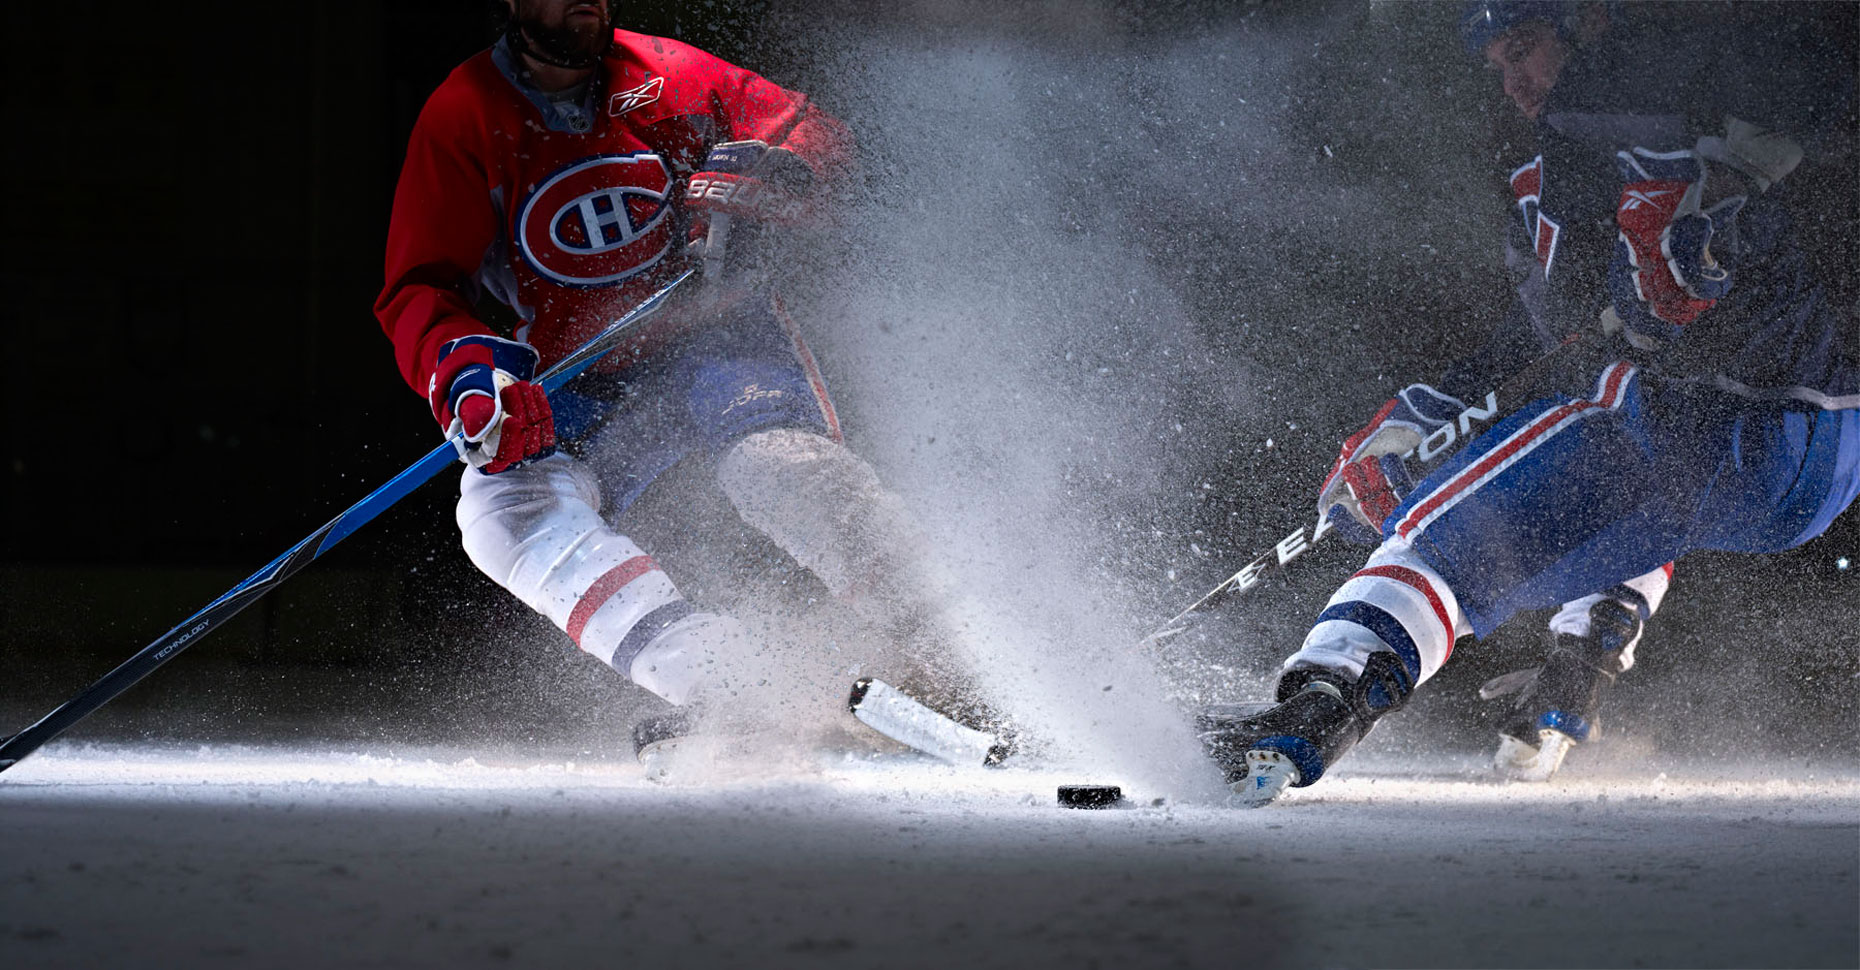 Hockey Ice Stopping Spray Photo By Monte Isom Spiderman Sport